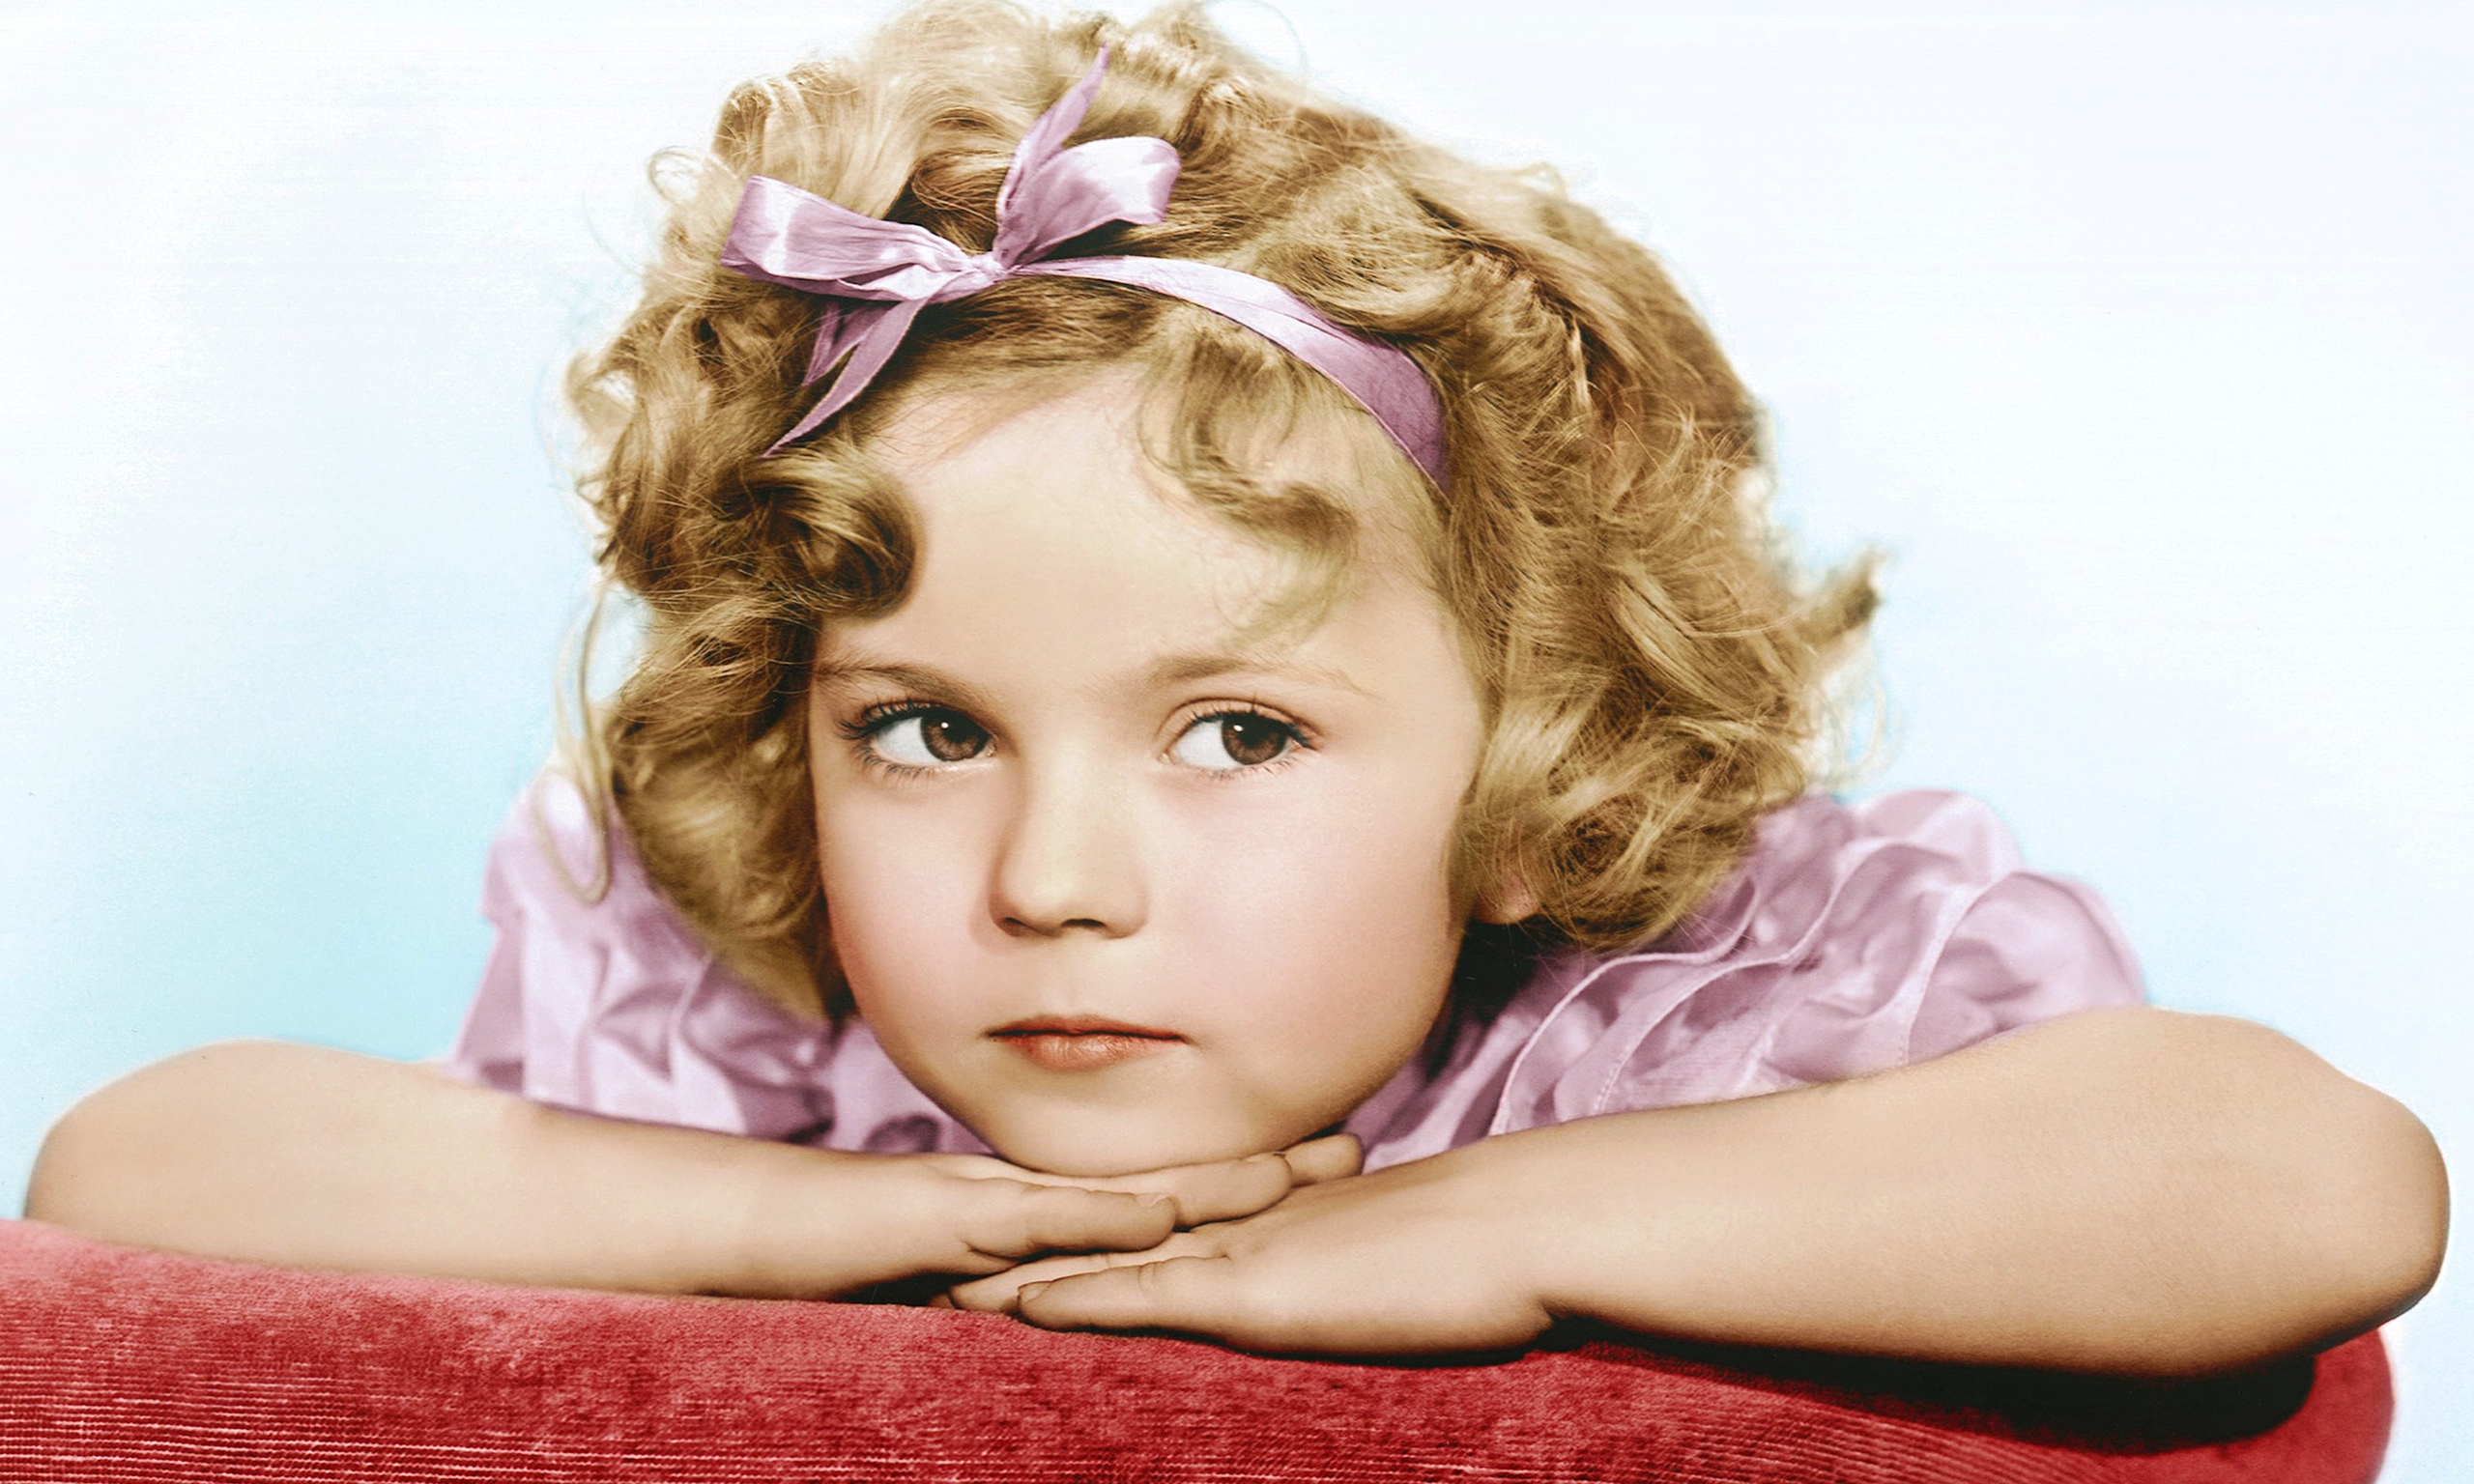 Shirley Temple Black obituary | Film | The Guardian